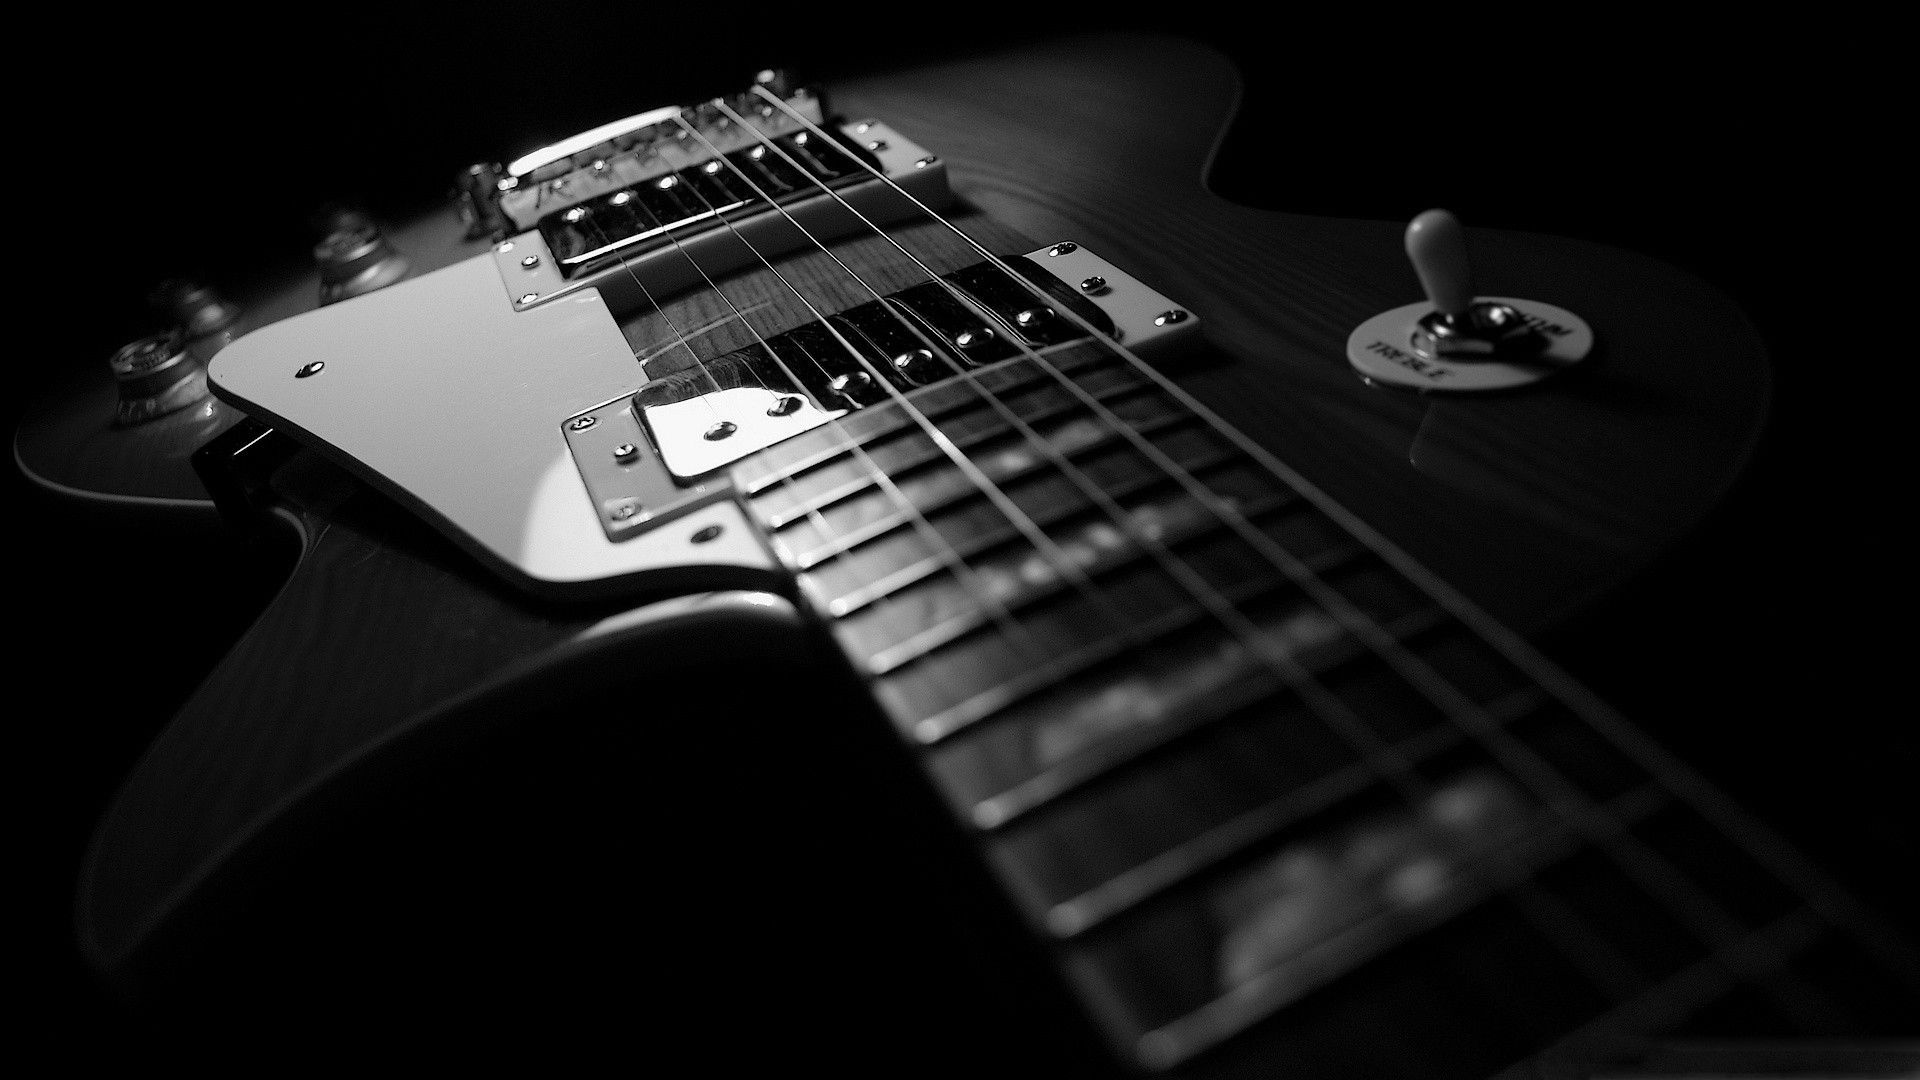 454 Guitar Wallpapers